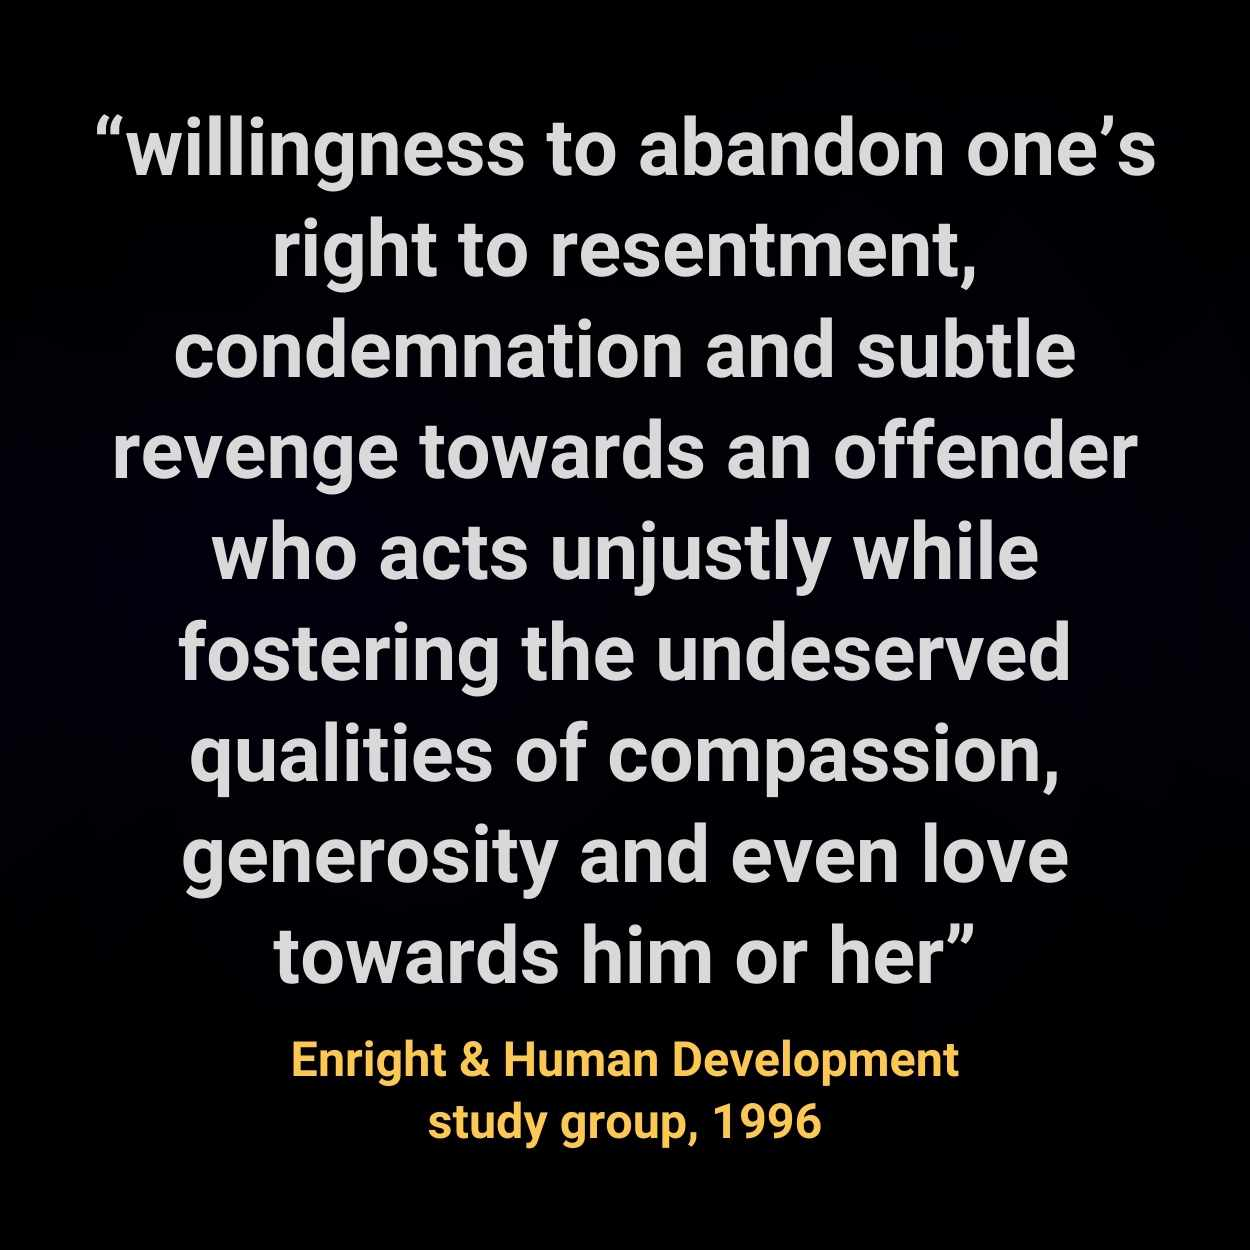 """""""willingness to abandon one's right to resentment, condemnation and subtle revenge towards an offender who acts unjustly while fostering the undeserved qualities of compassion, generosity and even love towards him or her"""""""